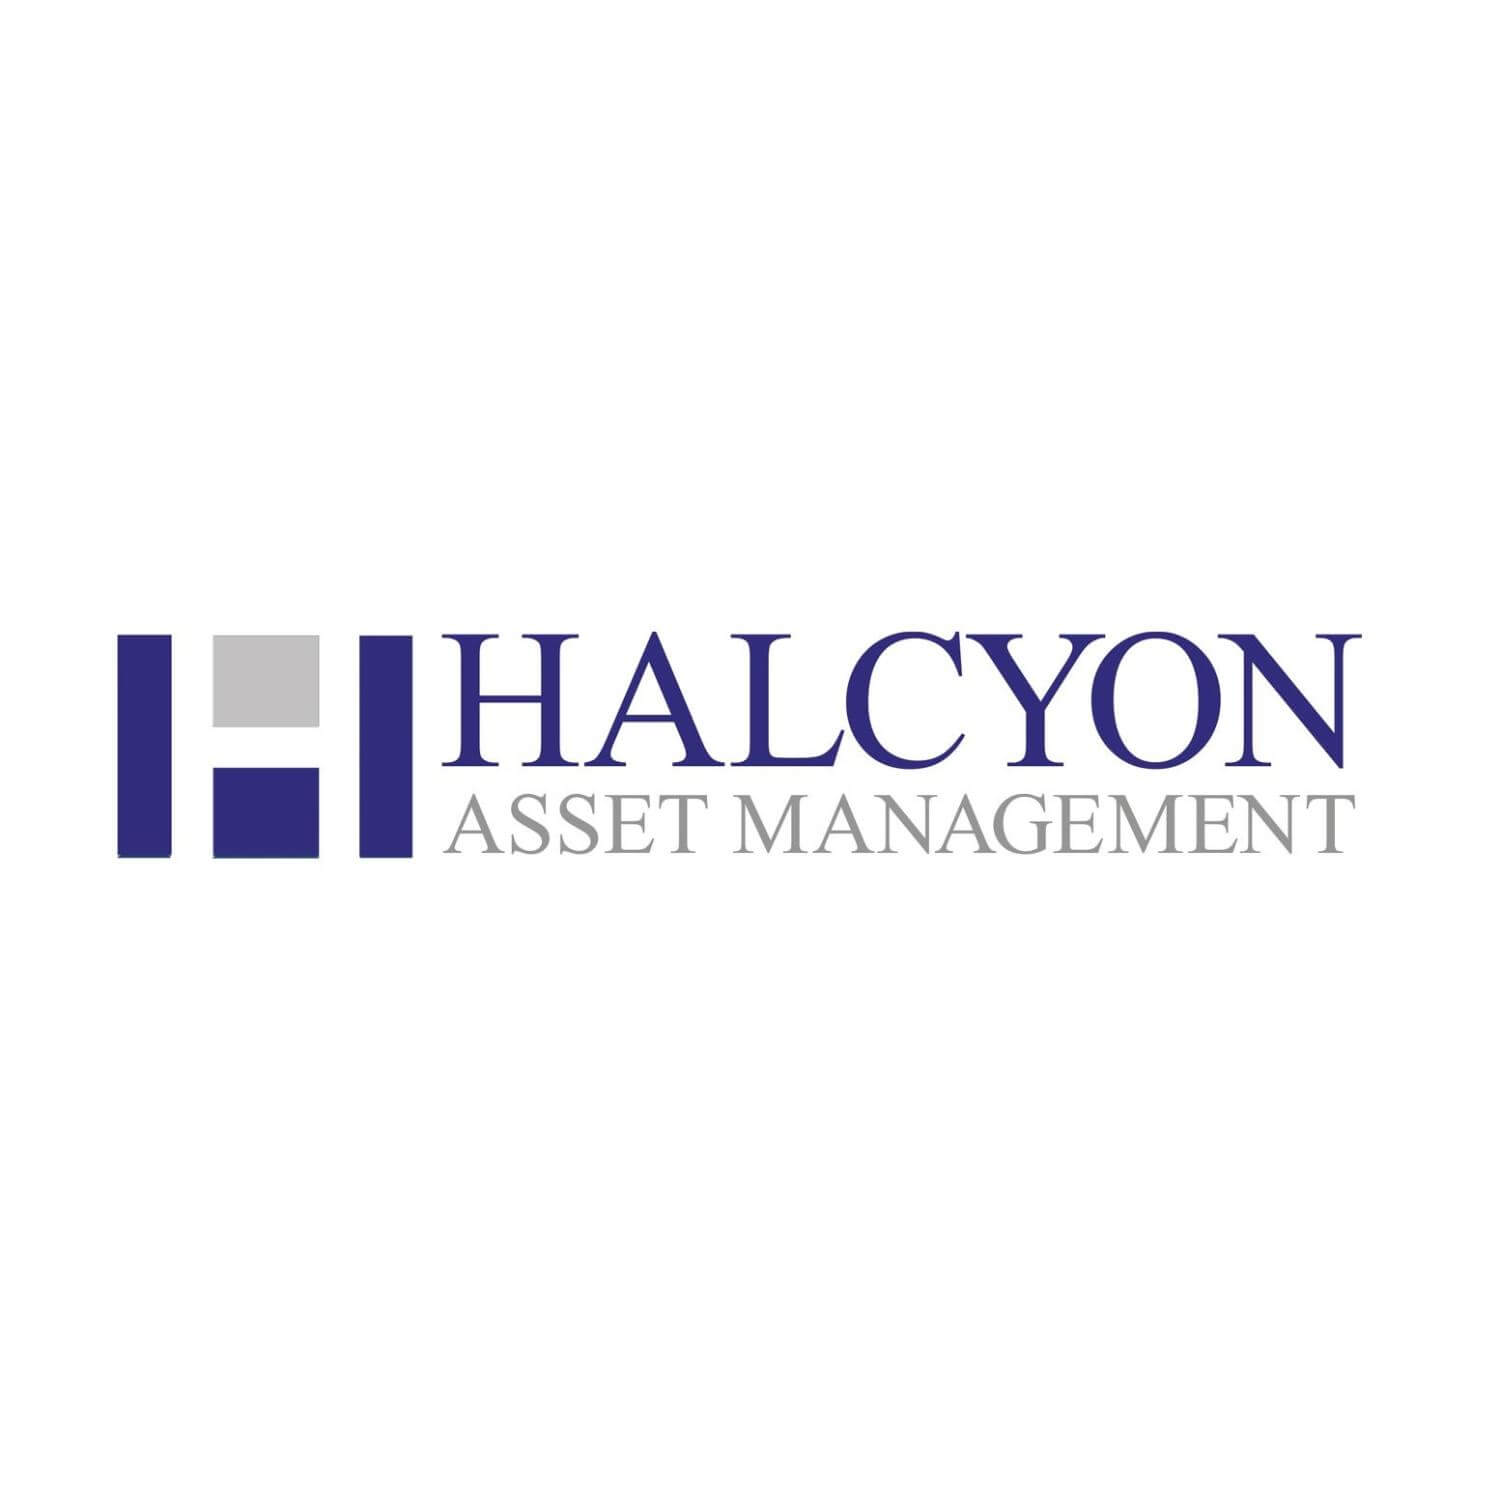 Halcyon Names Co-Heads of London Office